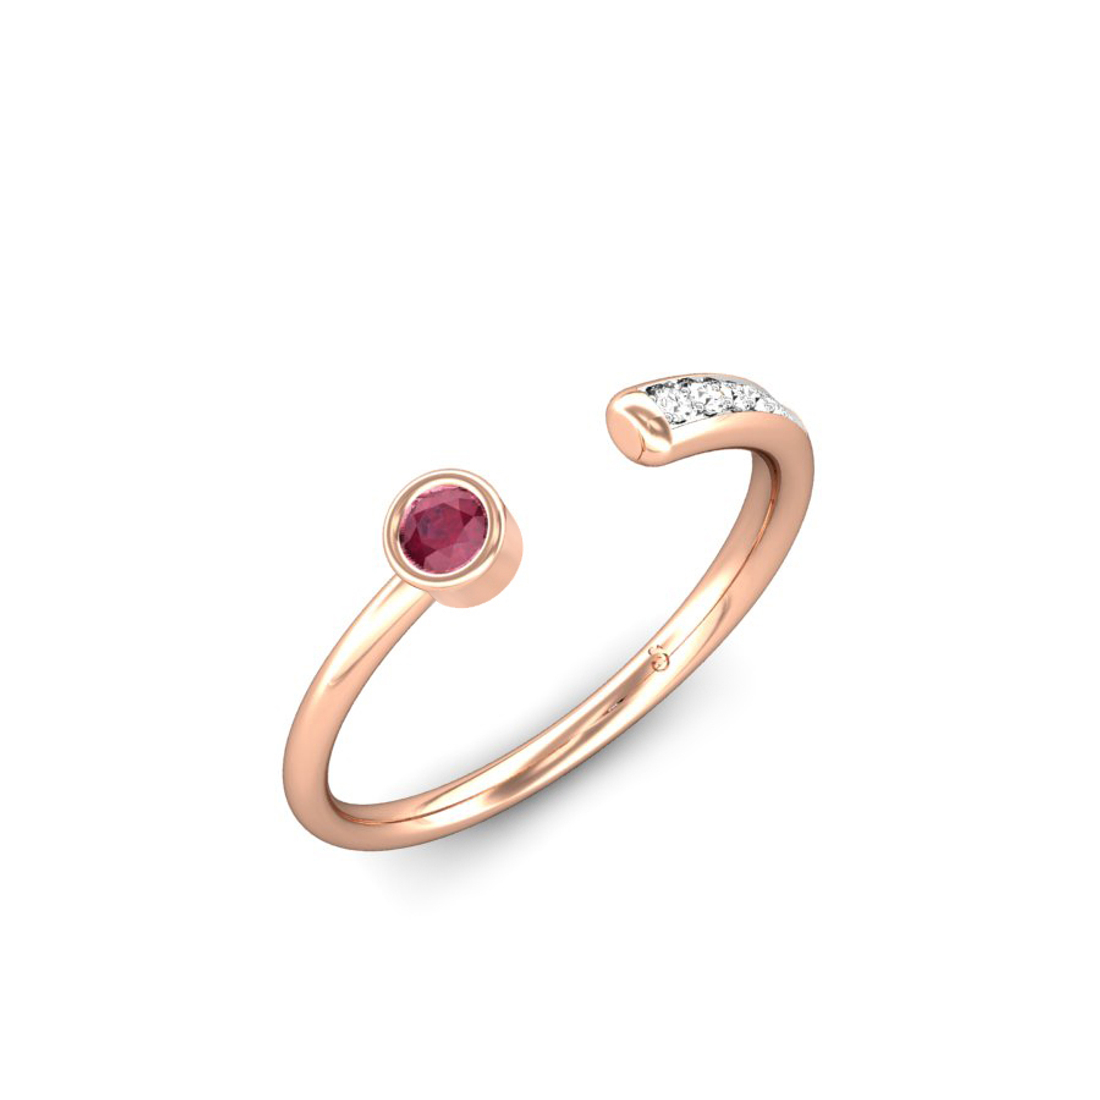 Jewel samarth 18k(750) BIS Hallmark Rose Gold Sparkling Trail Red Spinel Ring (CGL Certified)